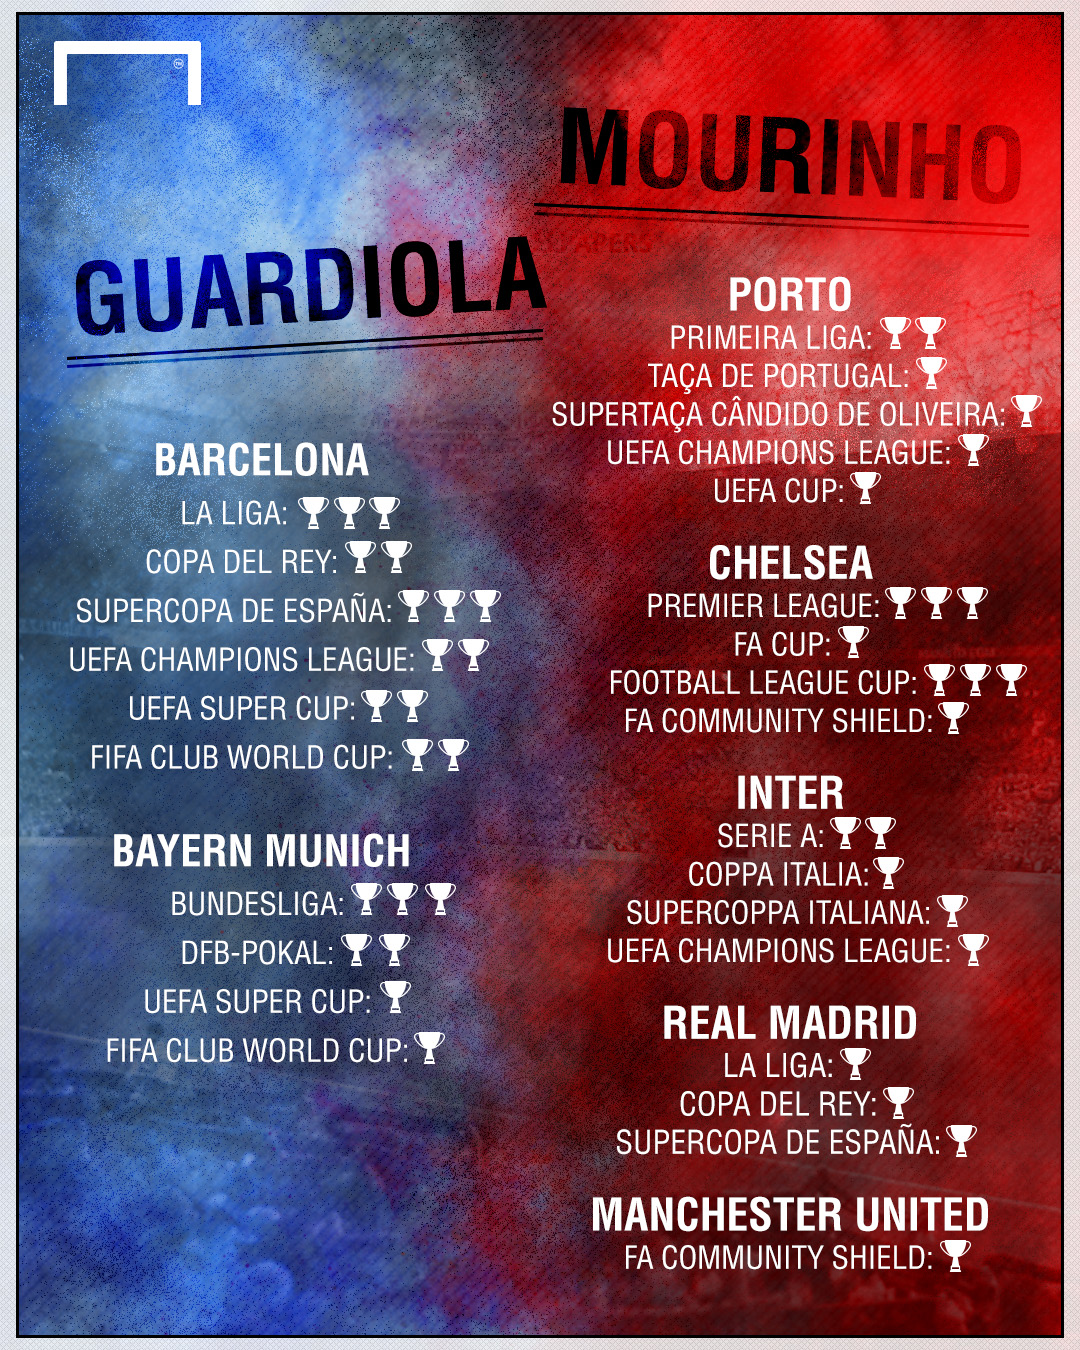 Who Has Won More Trophies